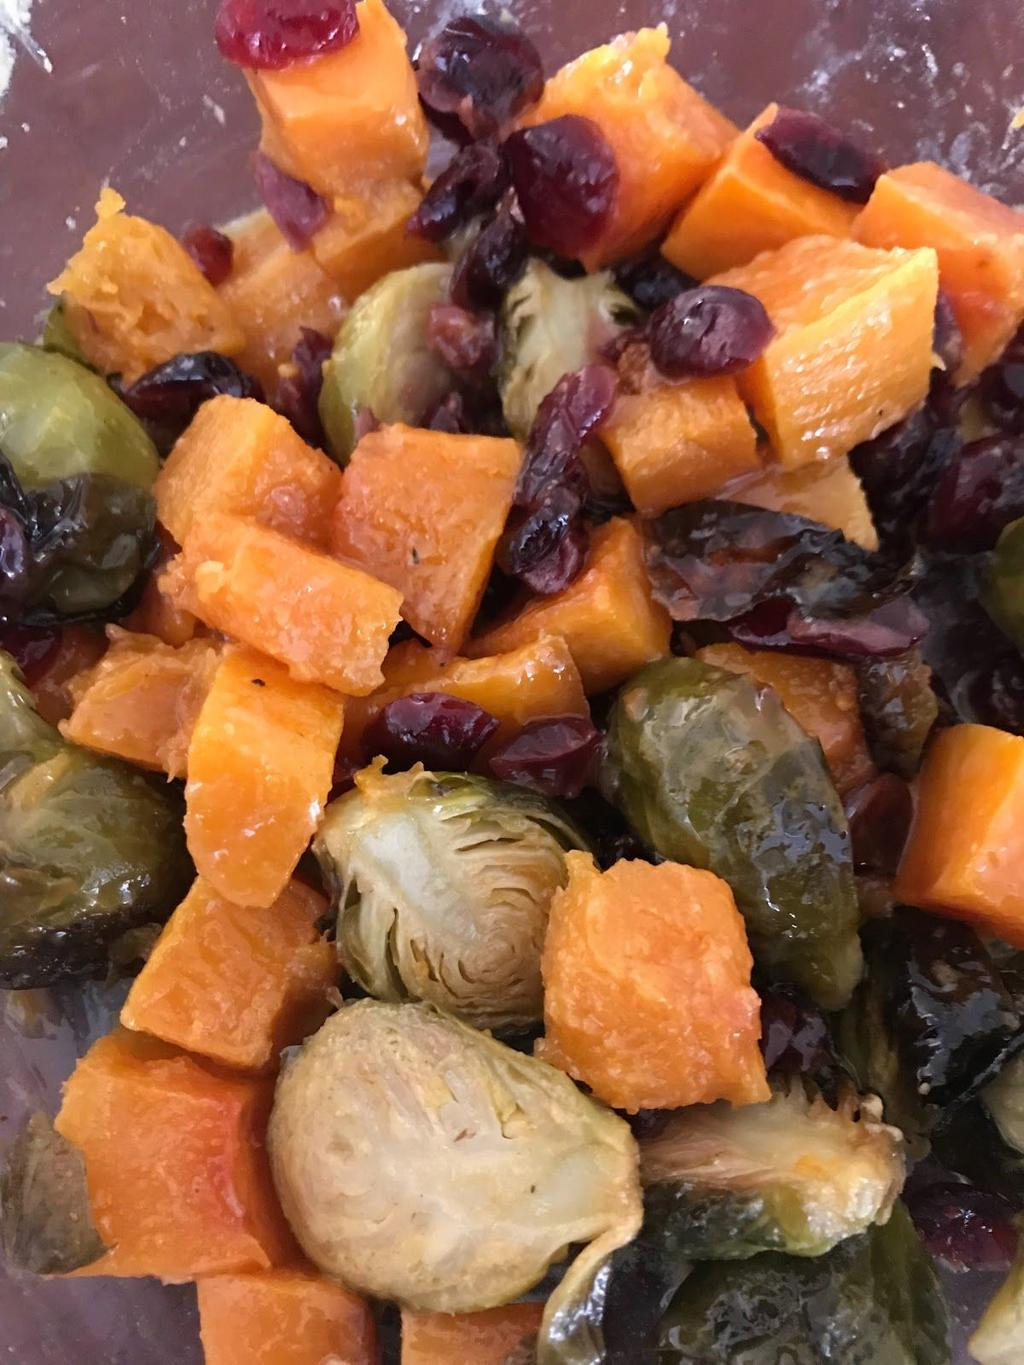 Butternut Squash, dried cranberry and brussel sprout side 1 Pound brussel sprouts, cut in half 1 Pound butternut squash, cut into cubes ¼ cup dried cranberries 4 tablespoons Olive oil 1 Tablespoon